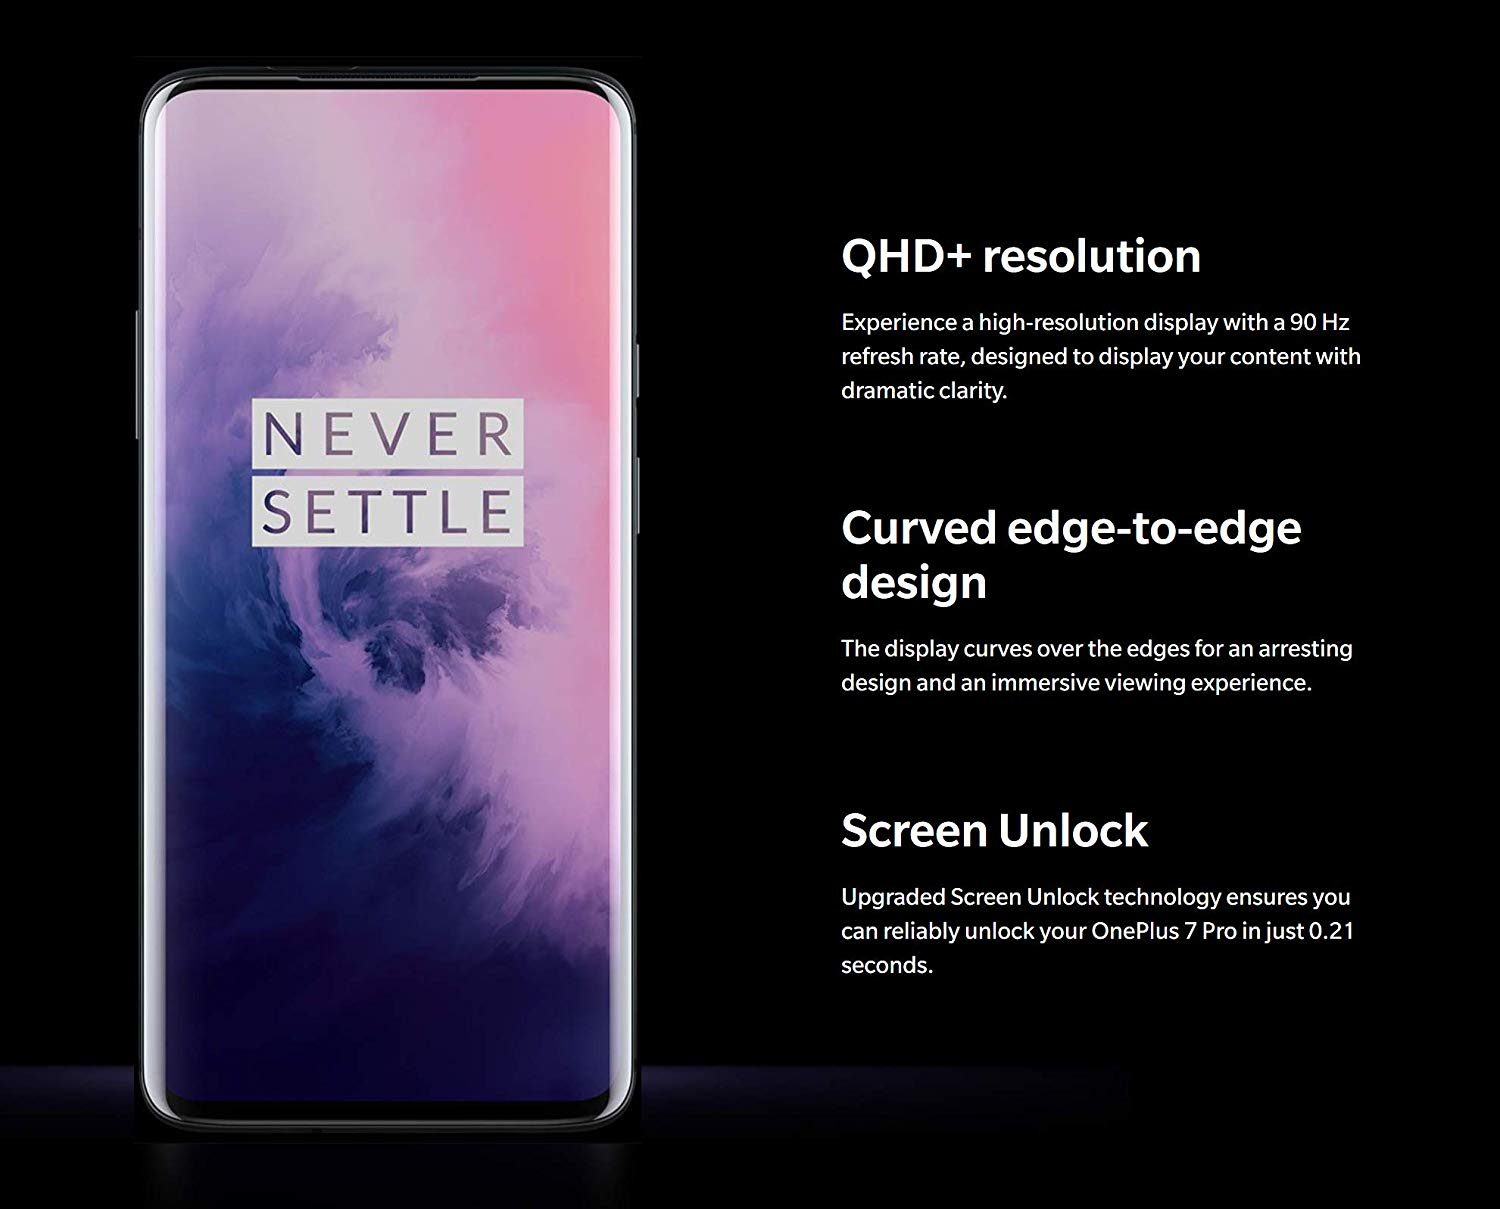 New OnePlus 7 Pro delivers innovation